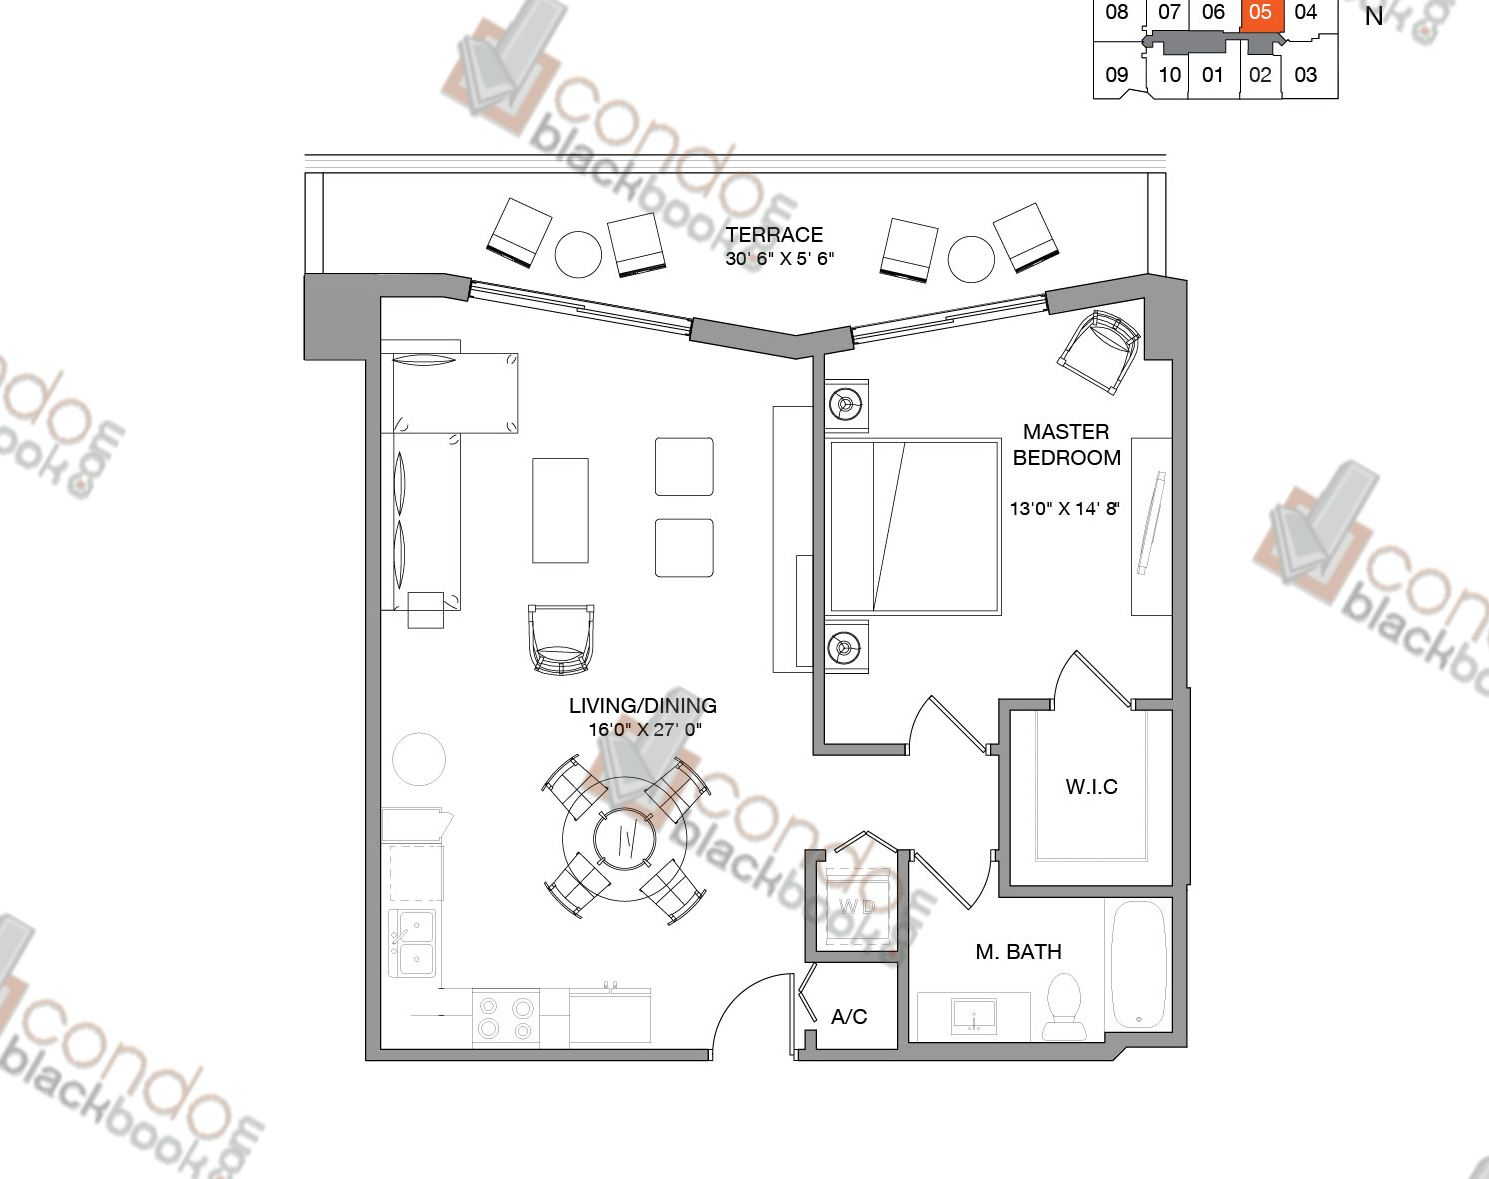 Floor plan for Brickell Ten Brickell Miami, model Residence Five, line 05,  1/1 bedrooms, 827 sq ft